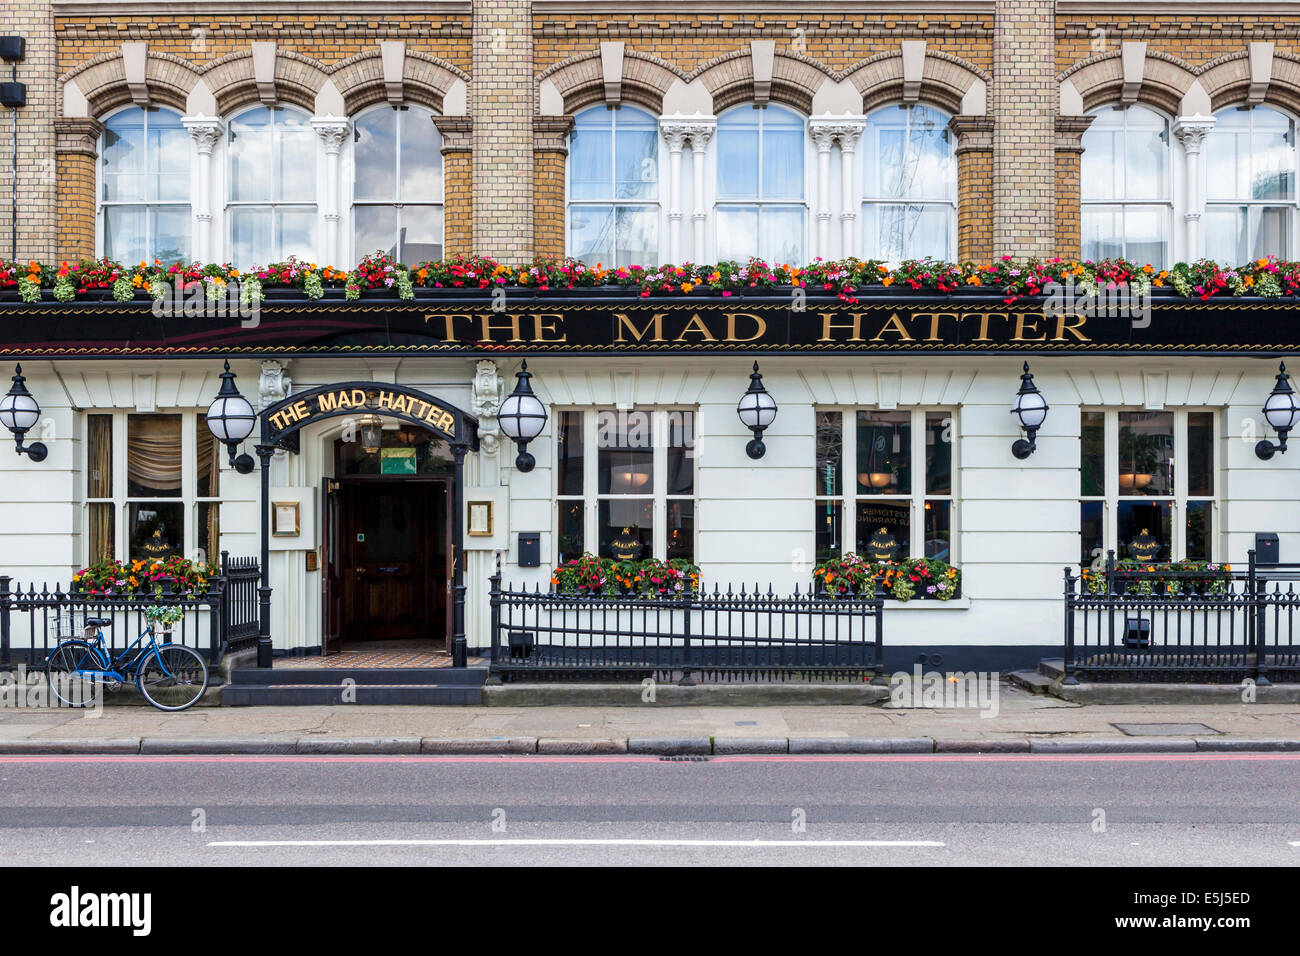 'The Mad Hatter' - a traditional English pub with Summer flower baskets in Southwark, London, UK - Stock Image